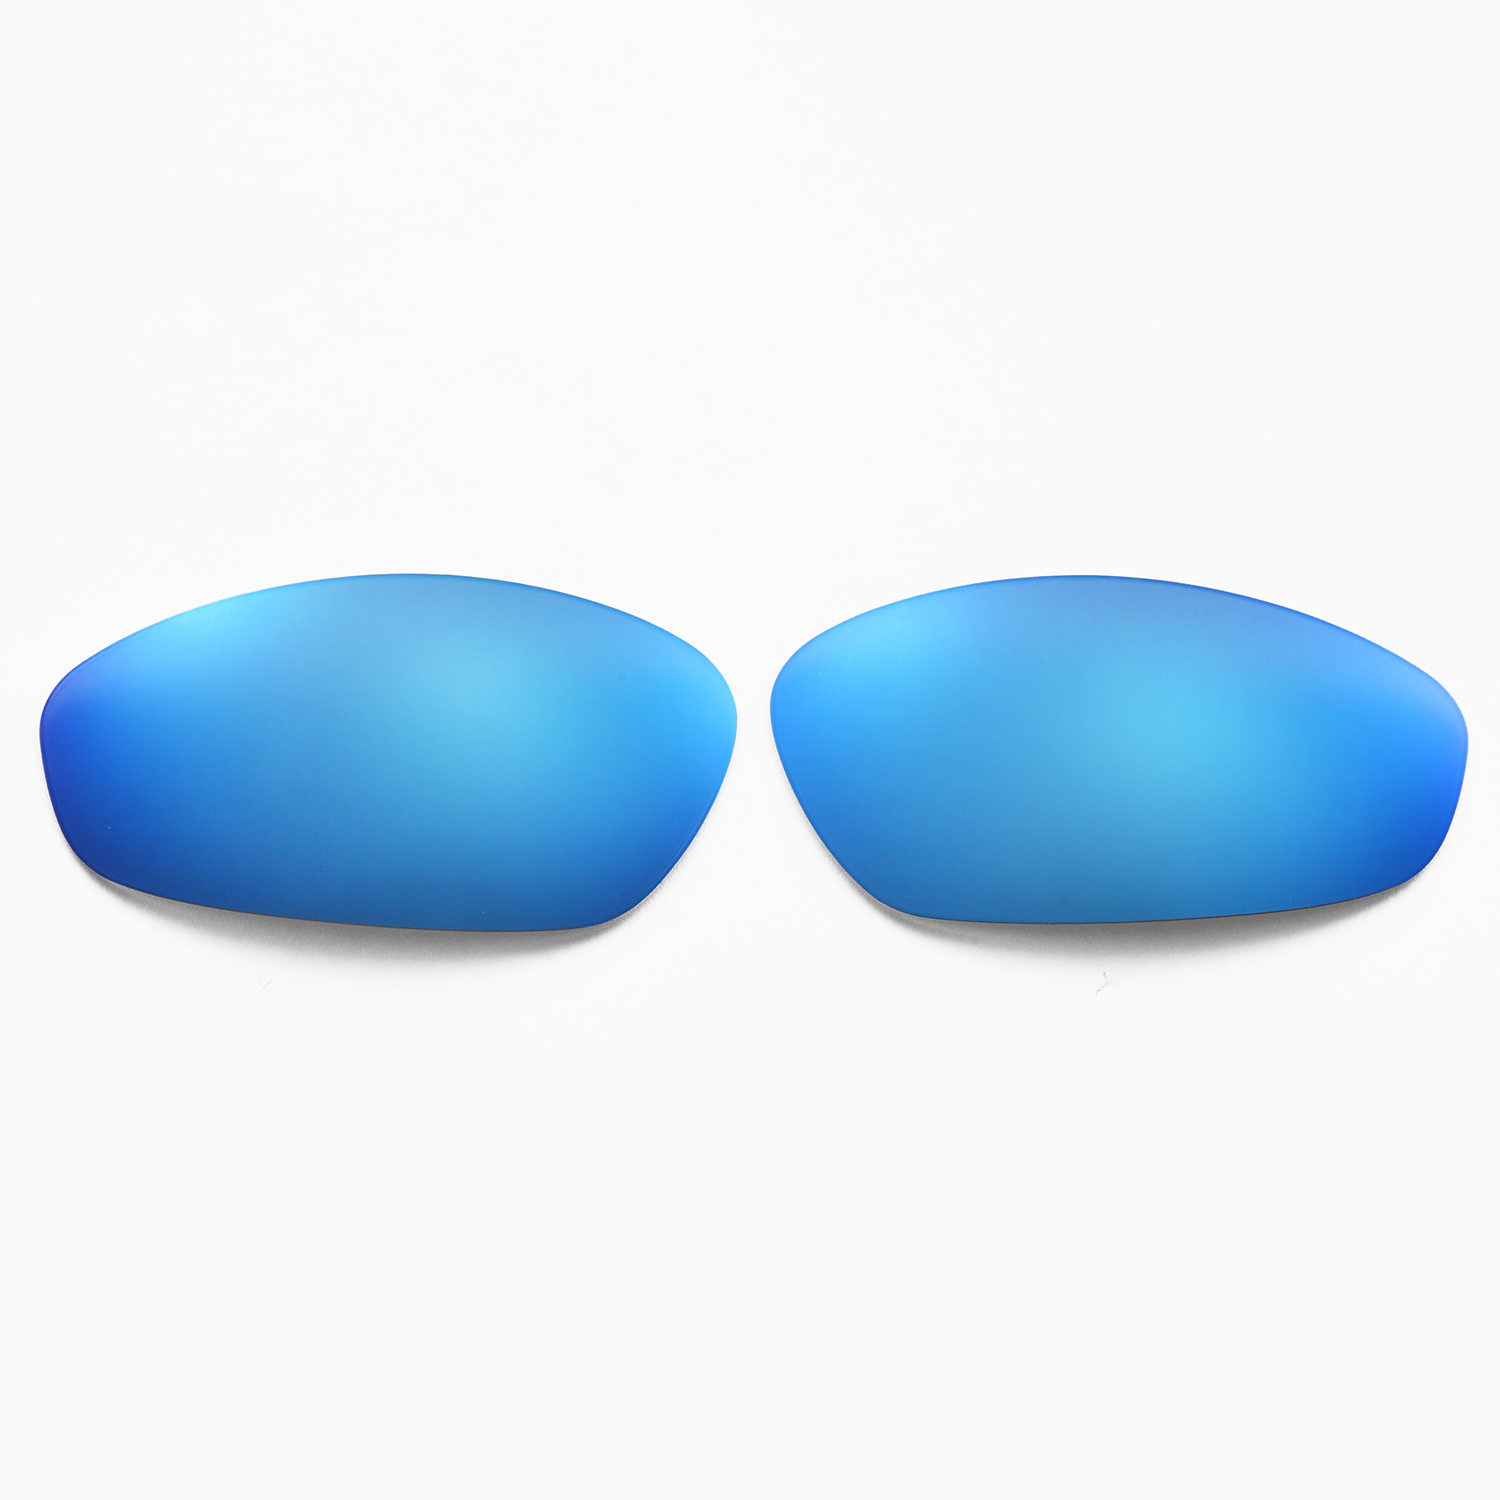 7c95ce73c6 New Walleva Polarized Ice Blue Replacement Lenses For Oakley Whisker ...